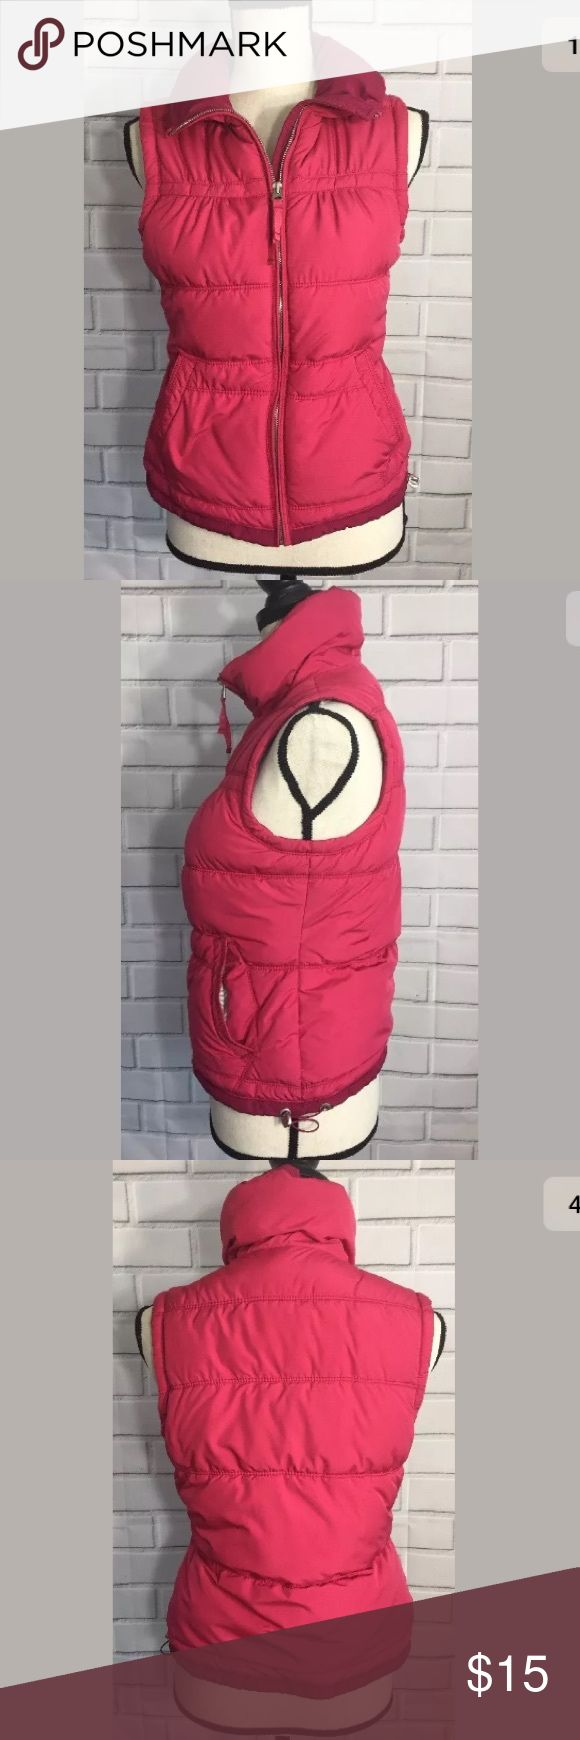 """American Eagle Pink Vest Jacket American Eagle Juniors/Womens Pink Puff Vest Size Small Shell: 100% Polyester Lining: 52% Polyester 48% Cotton  Fiber Fill: 100% Polyester  Approximate Arm pit to Arm pit: 18"""" Length: 21 1/2"""" American Eagle Outfitters Jackets & Coats Vests"""